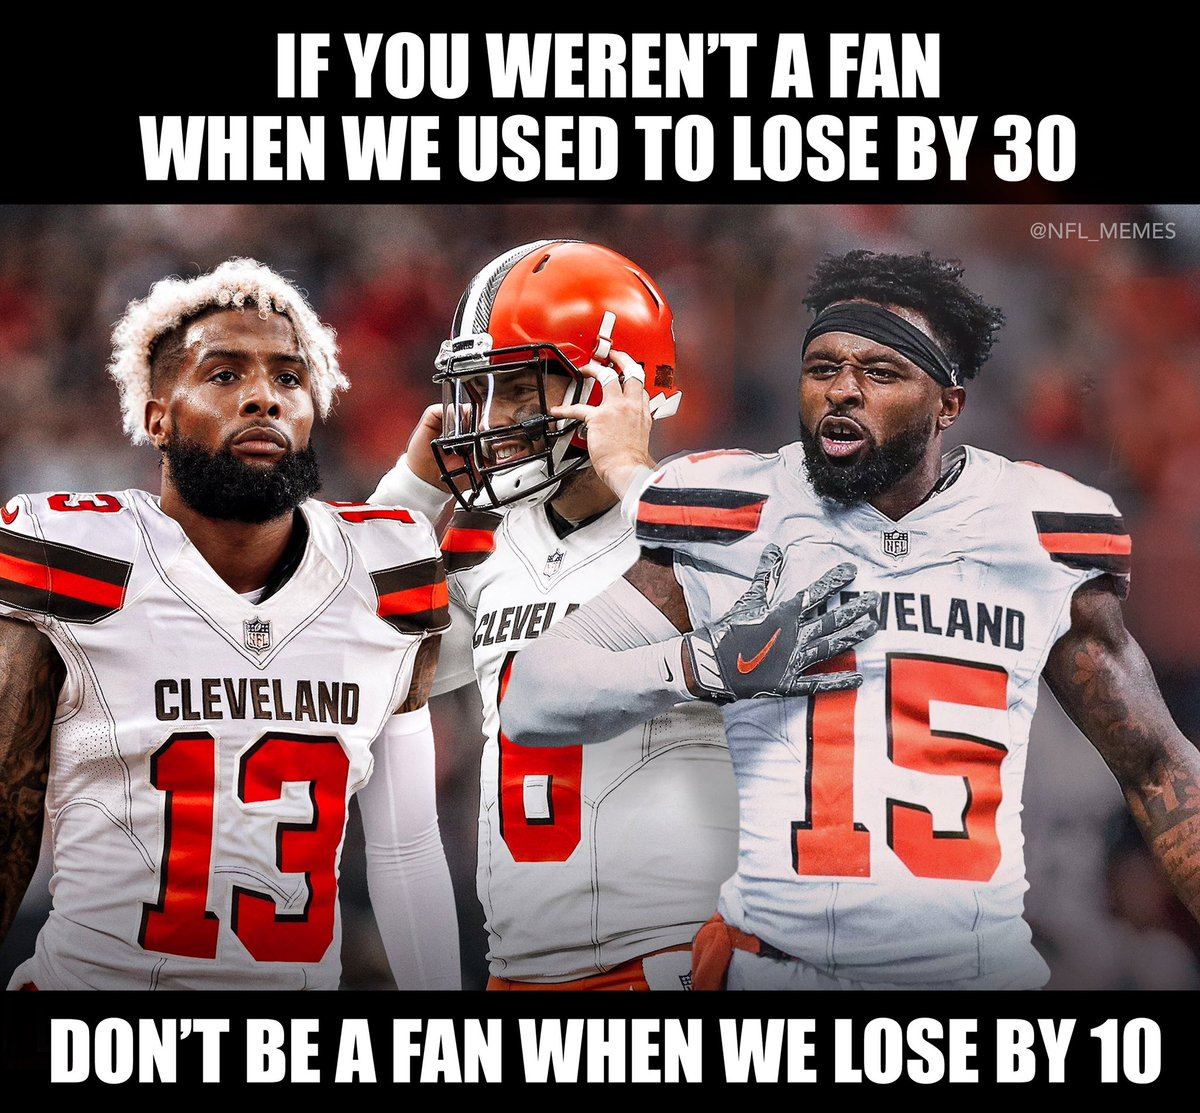 Browns will still find a way to screw this up...